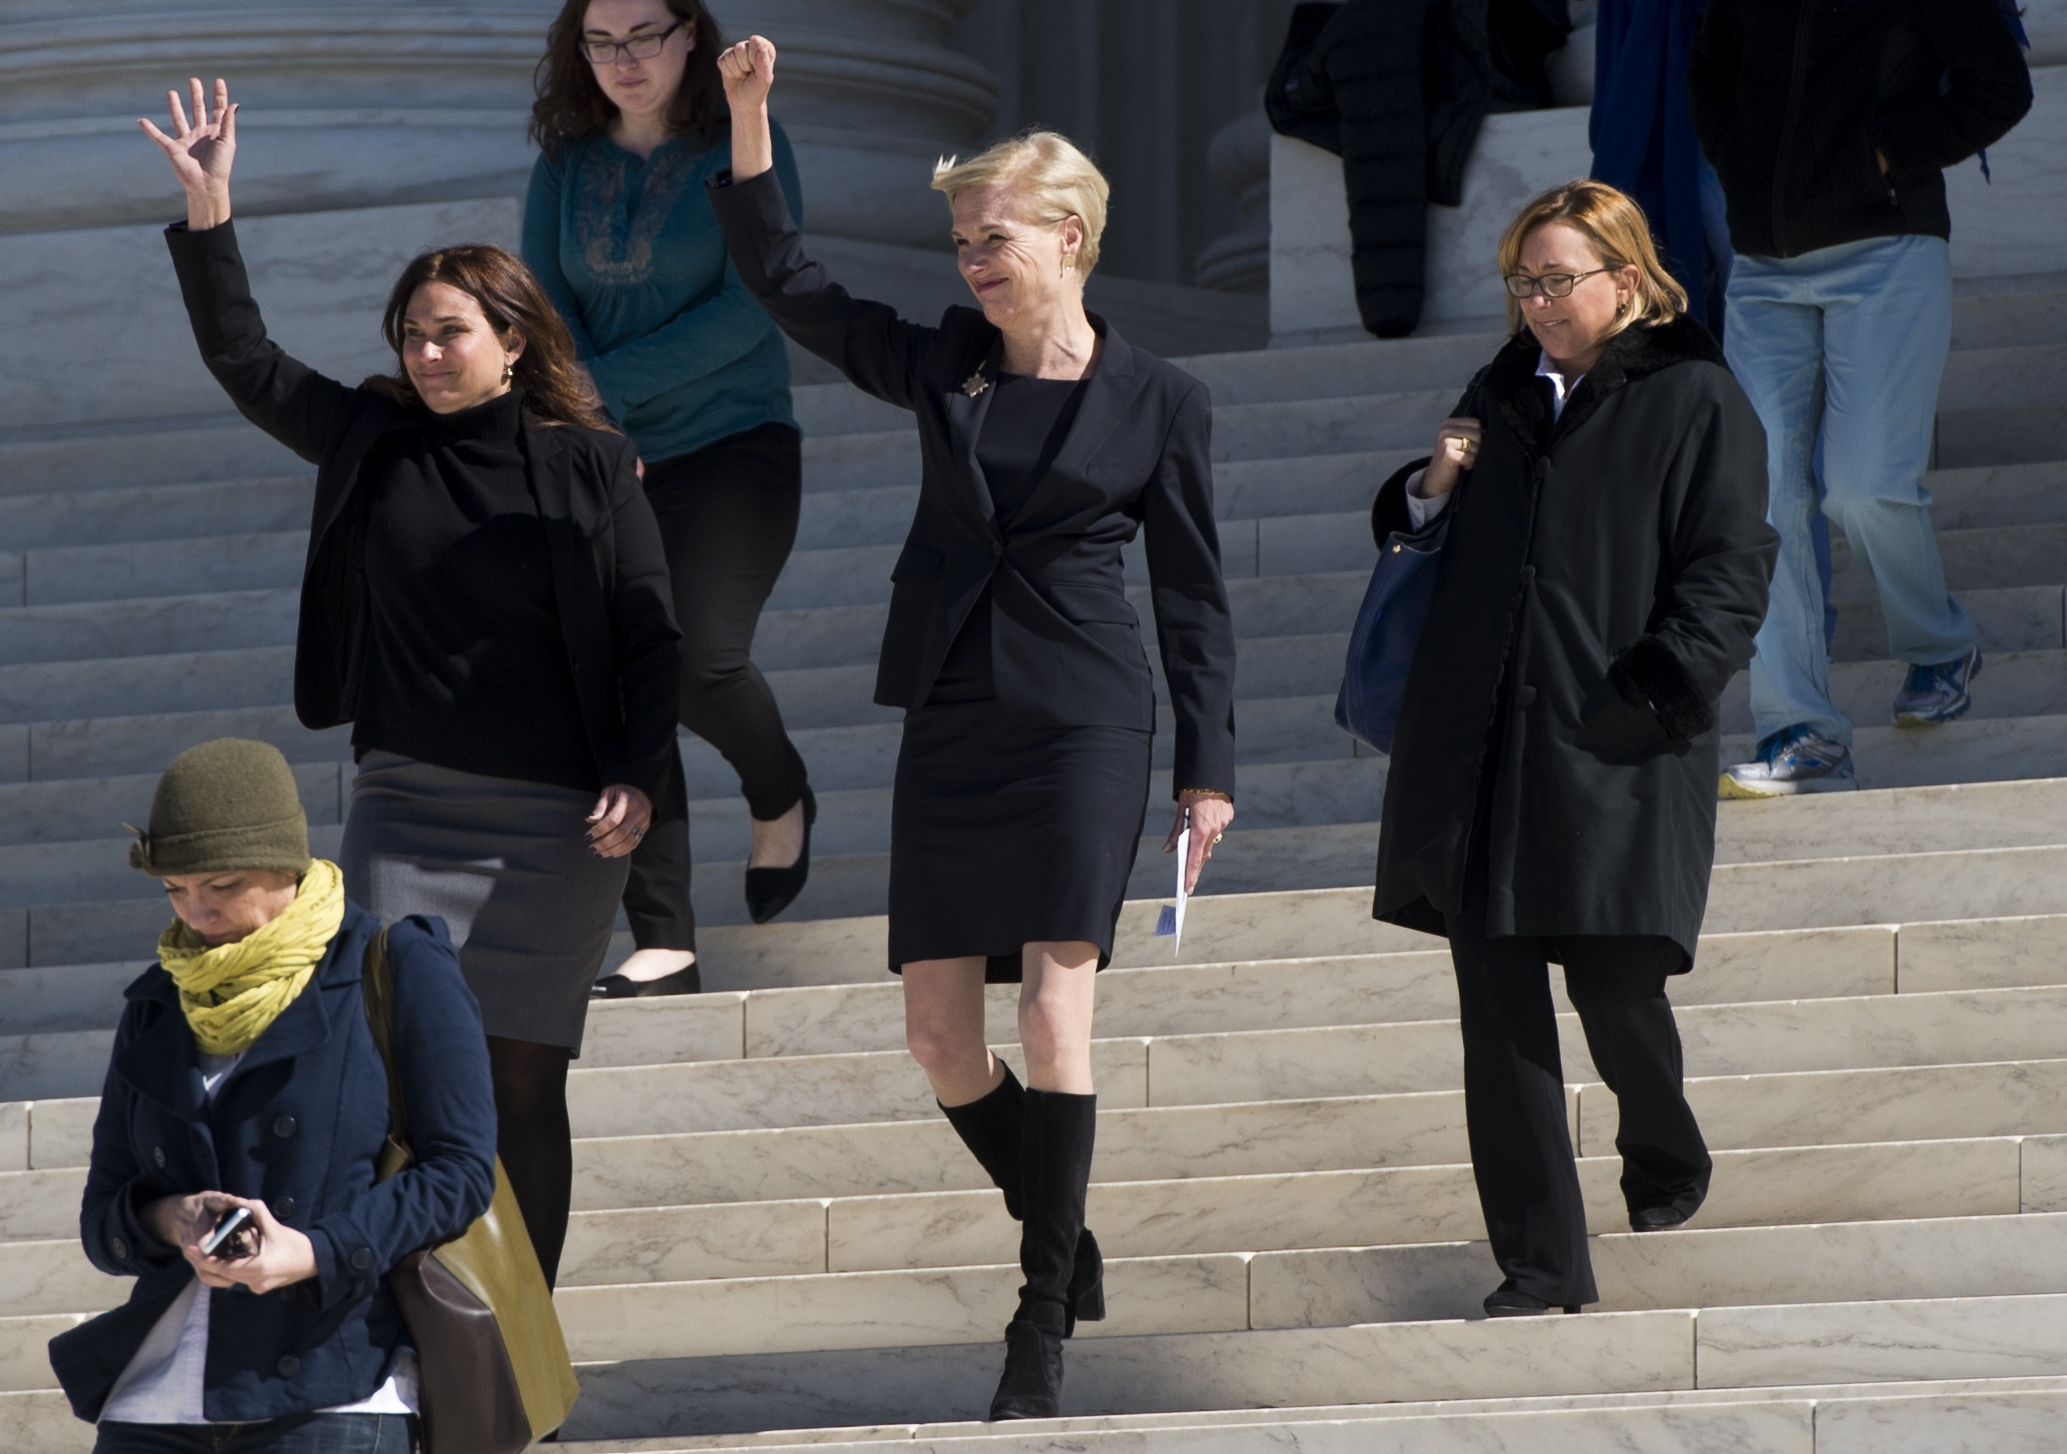 Cecile Richards (C), president of Planned Parenthood, acknowledges supporters as she leaves the Supreme Court in Washington, DC, March 2, 2016, following oral arguments in Whole Woman's Health v. Hellerstedt (Saul Loeb/AFP/Getty Images)